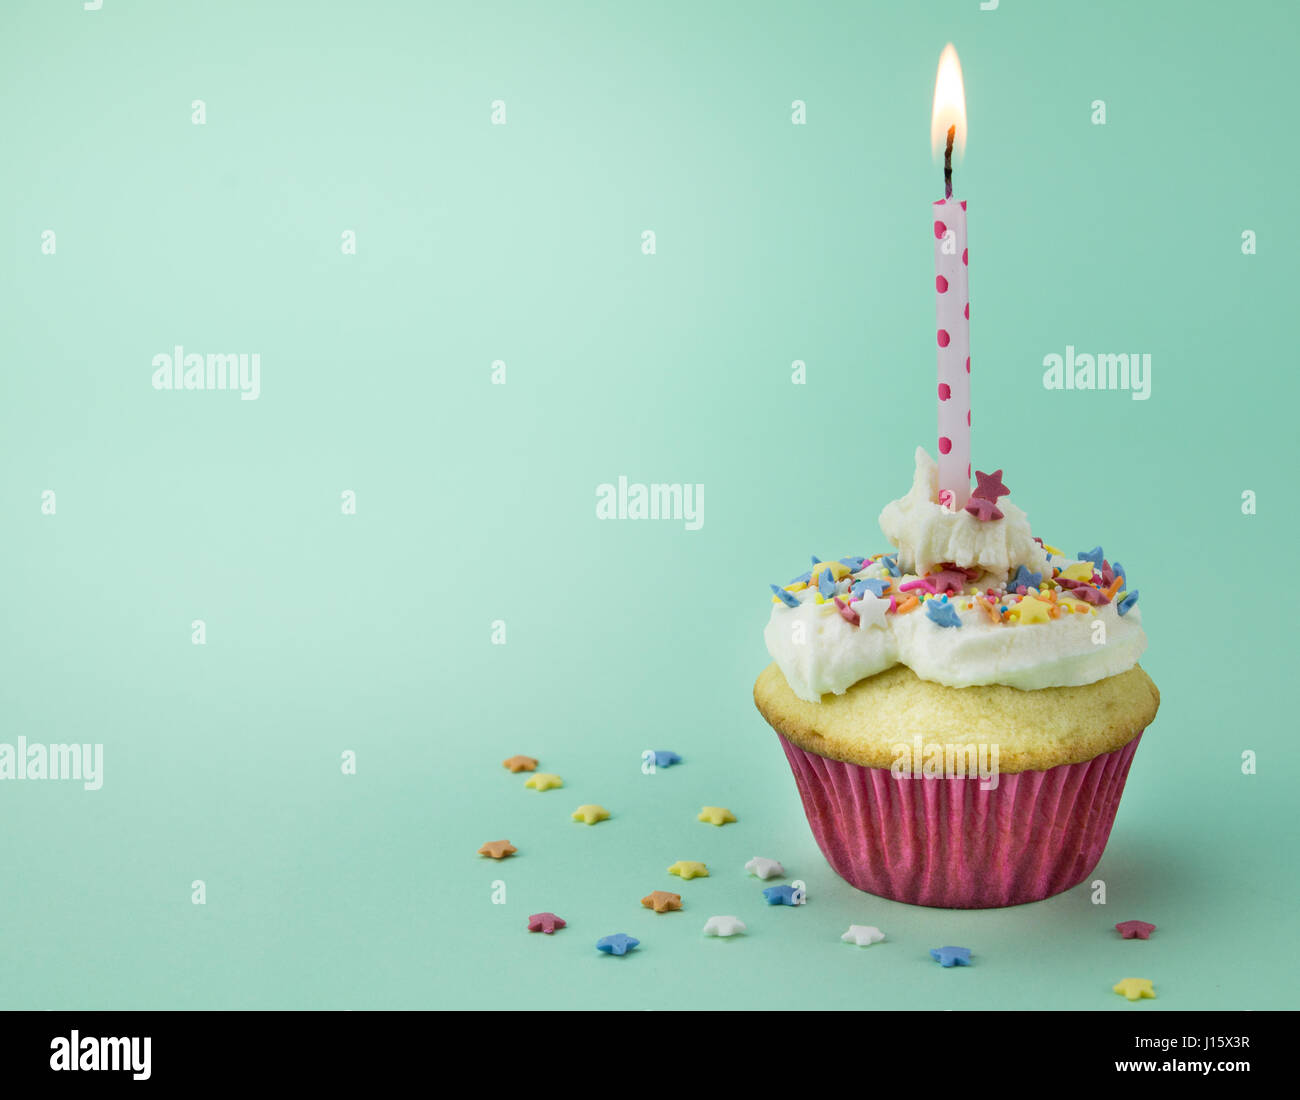 One cupcake with lit candle and star sprinkles isolated on green background - Stock Image